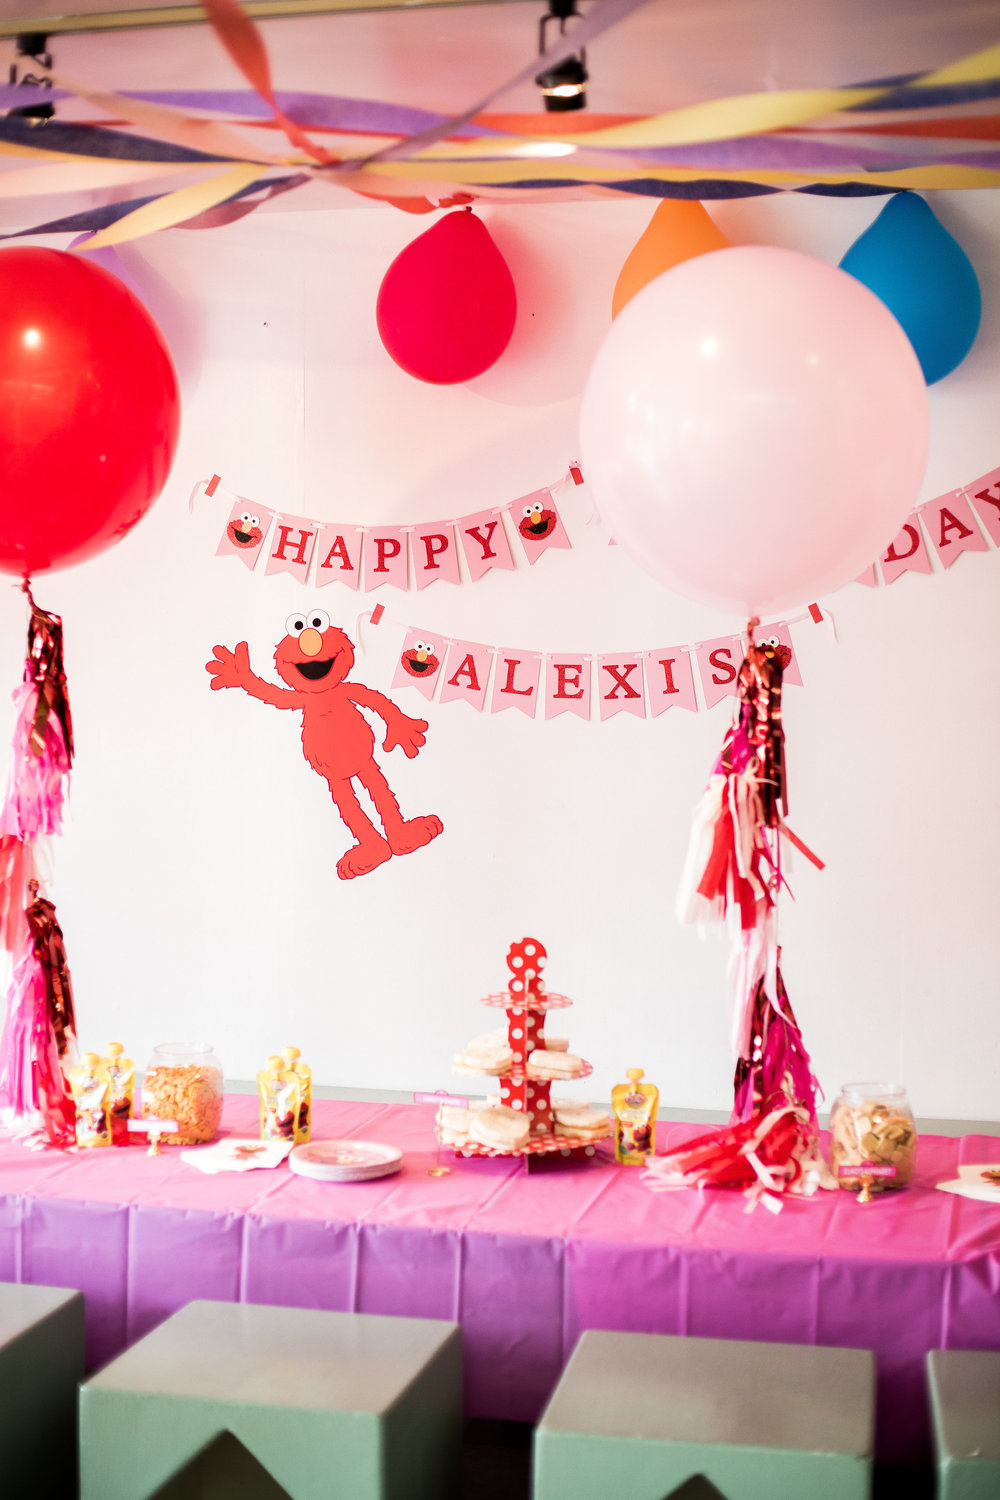 Alexis'_1st_Birthday_04.07.18_-172.jpg